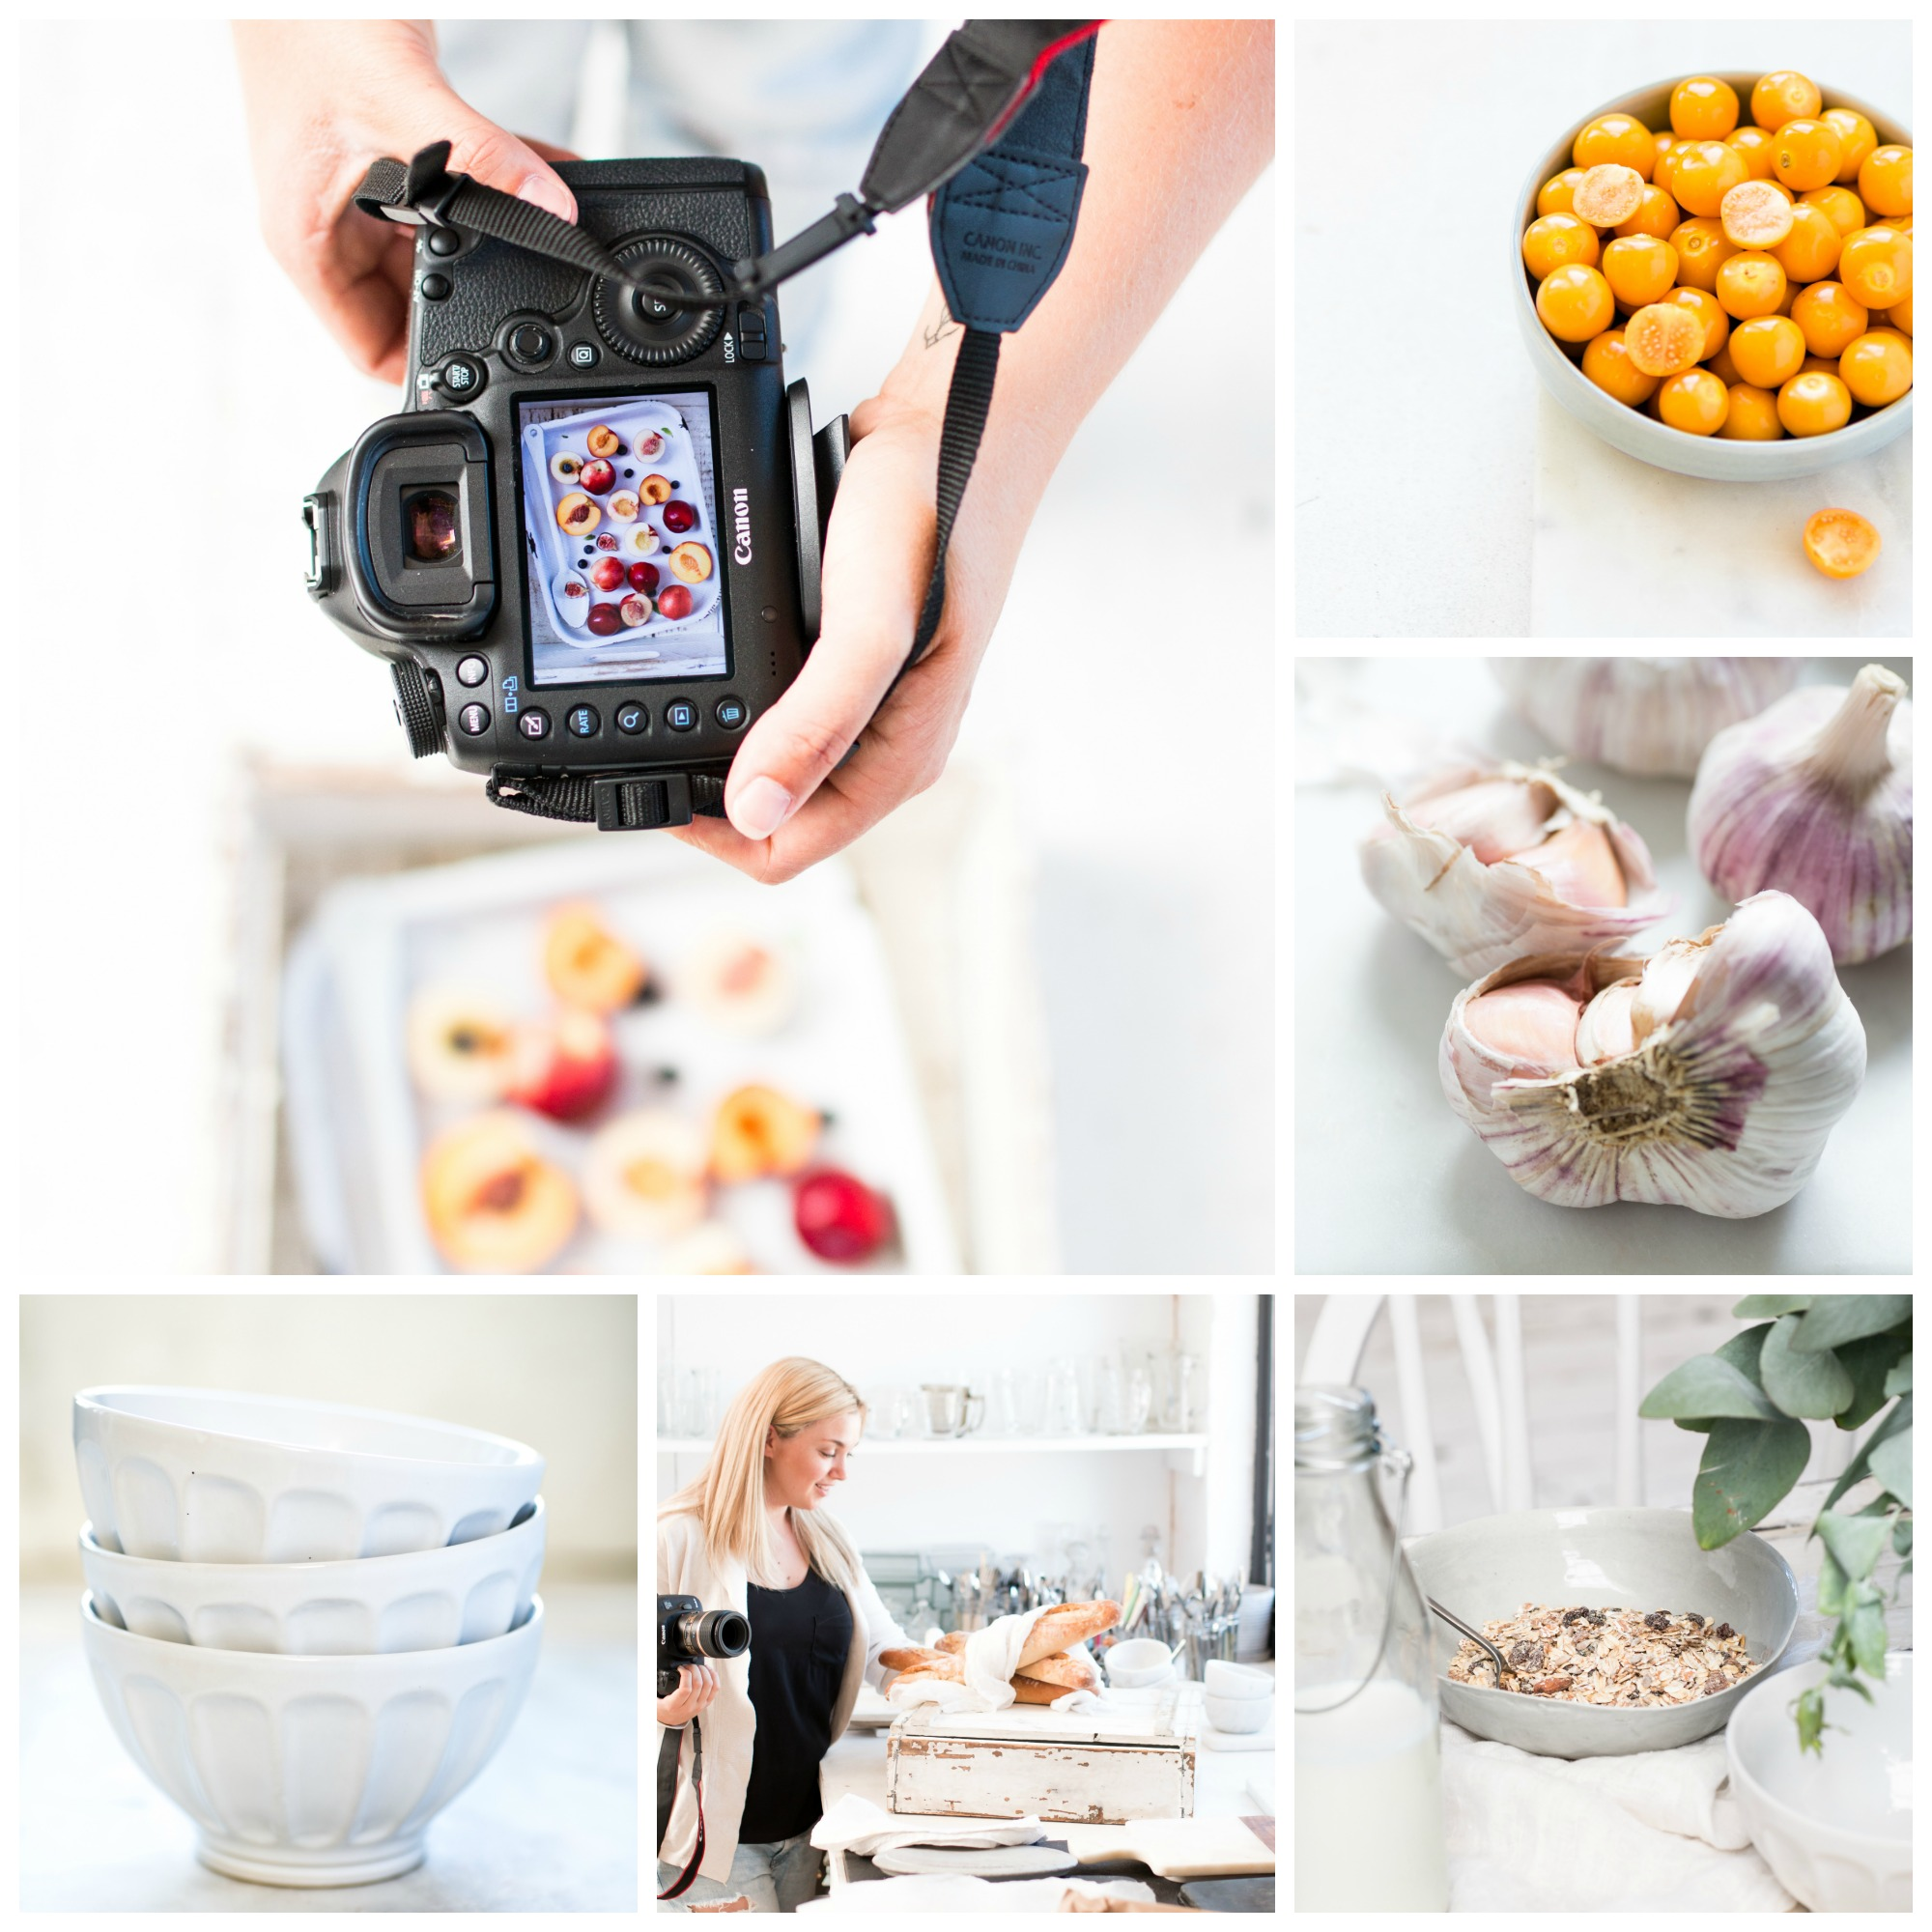 The Luminous Kitchen Food Photography Workshop || Gold Coast 2016